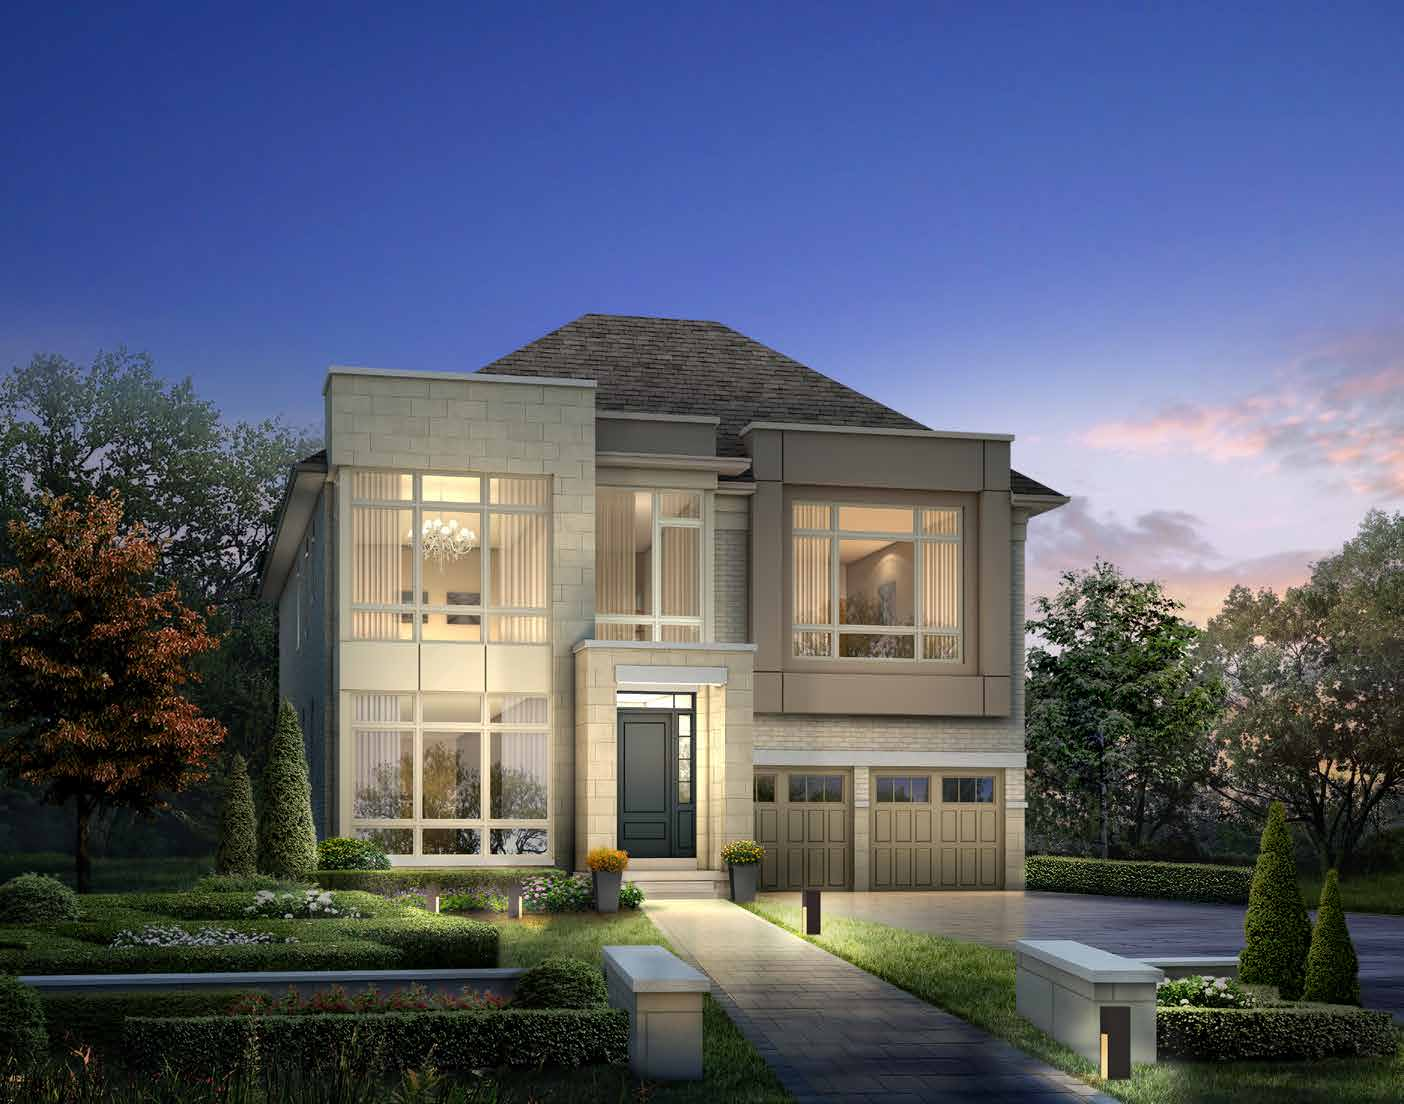 ELEVATION C 4338 sq. ft.